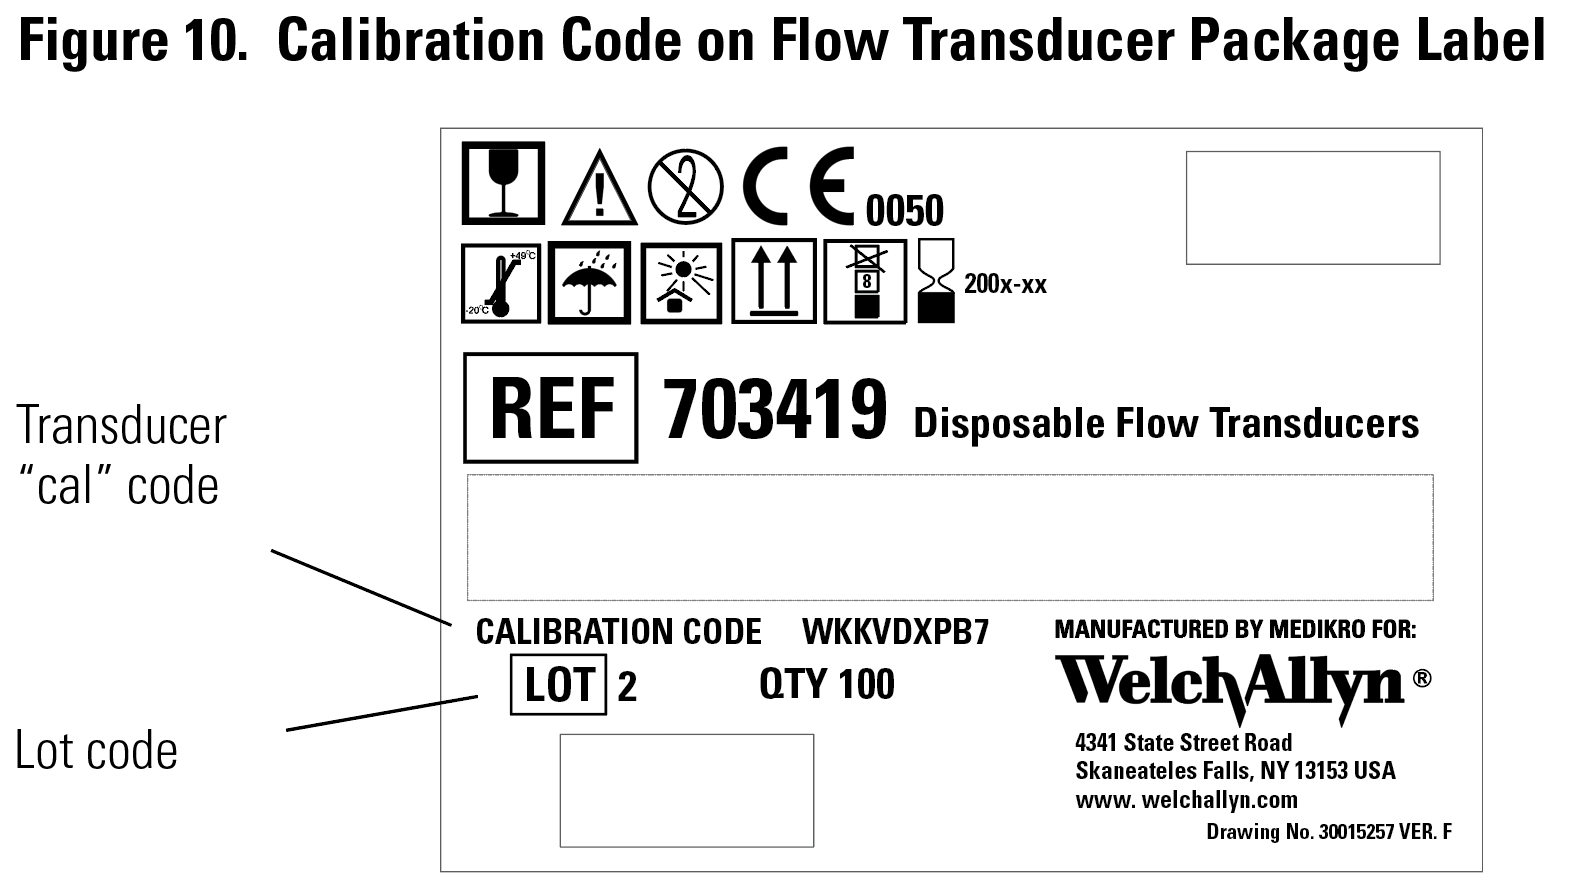 Welch Allyn Calibration Code on Flow Transducer Box Label